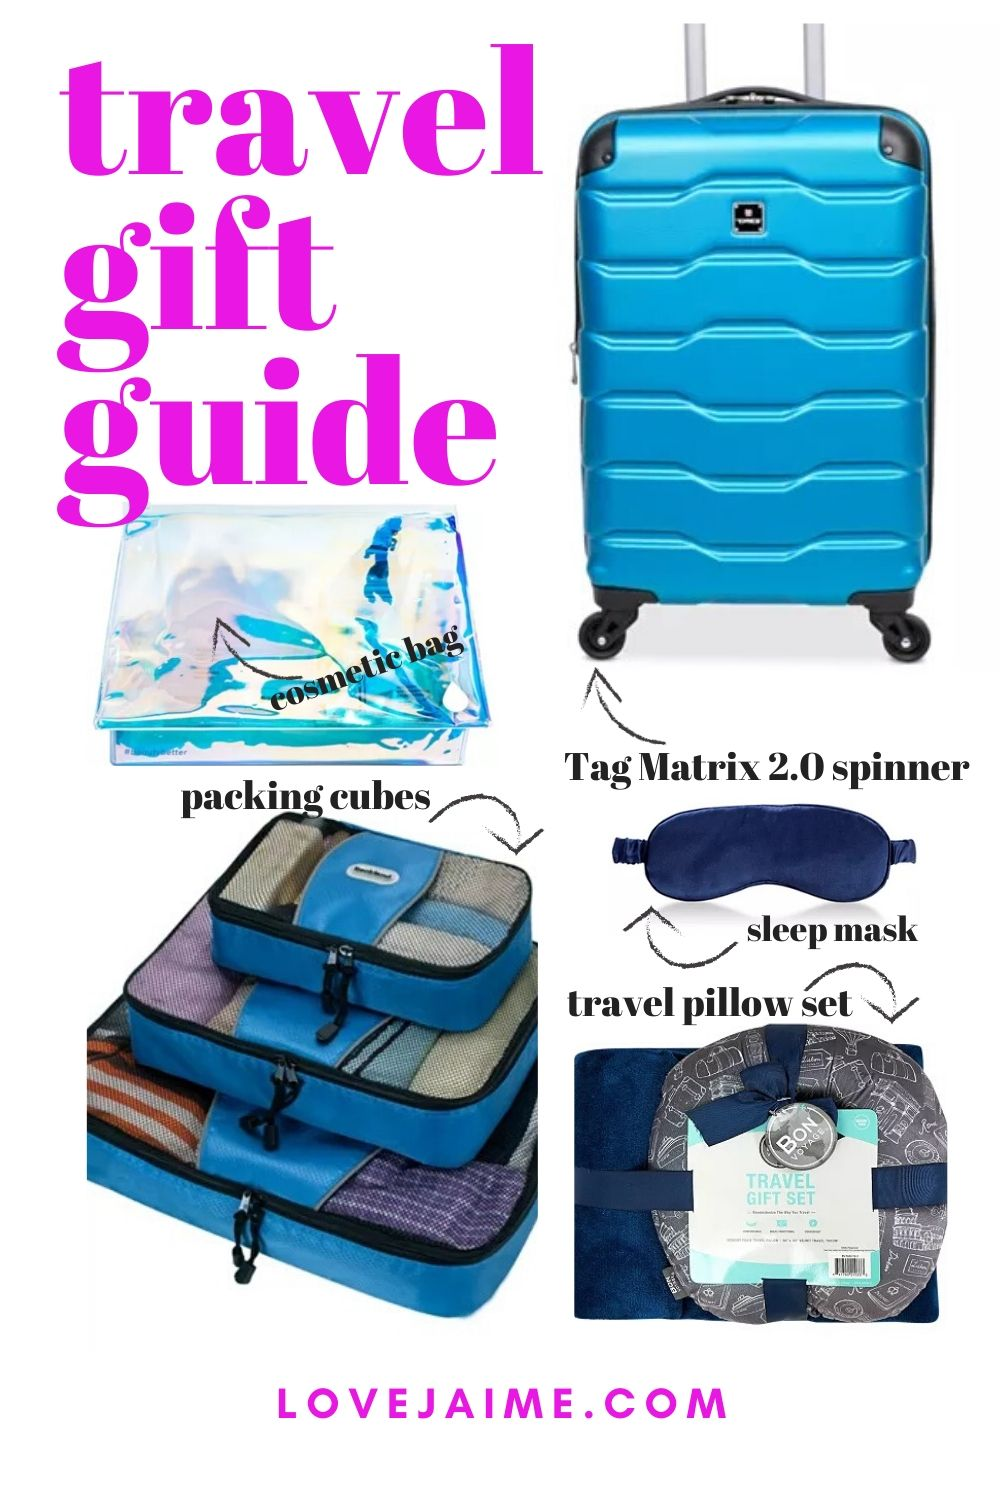 The Black Friday sales have started at Macy's, and one of the best deals this season is the Tag Matrix 2.0 Spinners! Check out these five items perfect for any traveler on your list this season. #travel #giftguide #gifts #deals #TravelWithMacys #ad